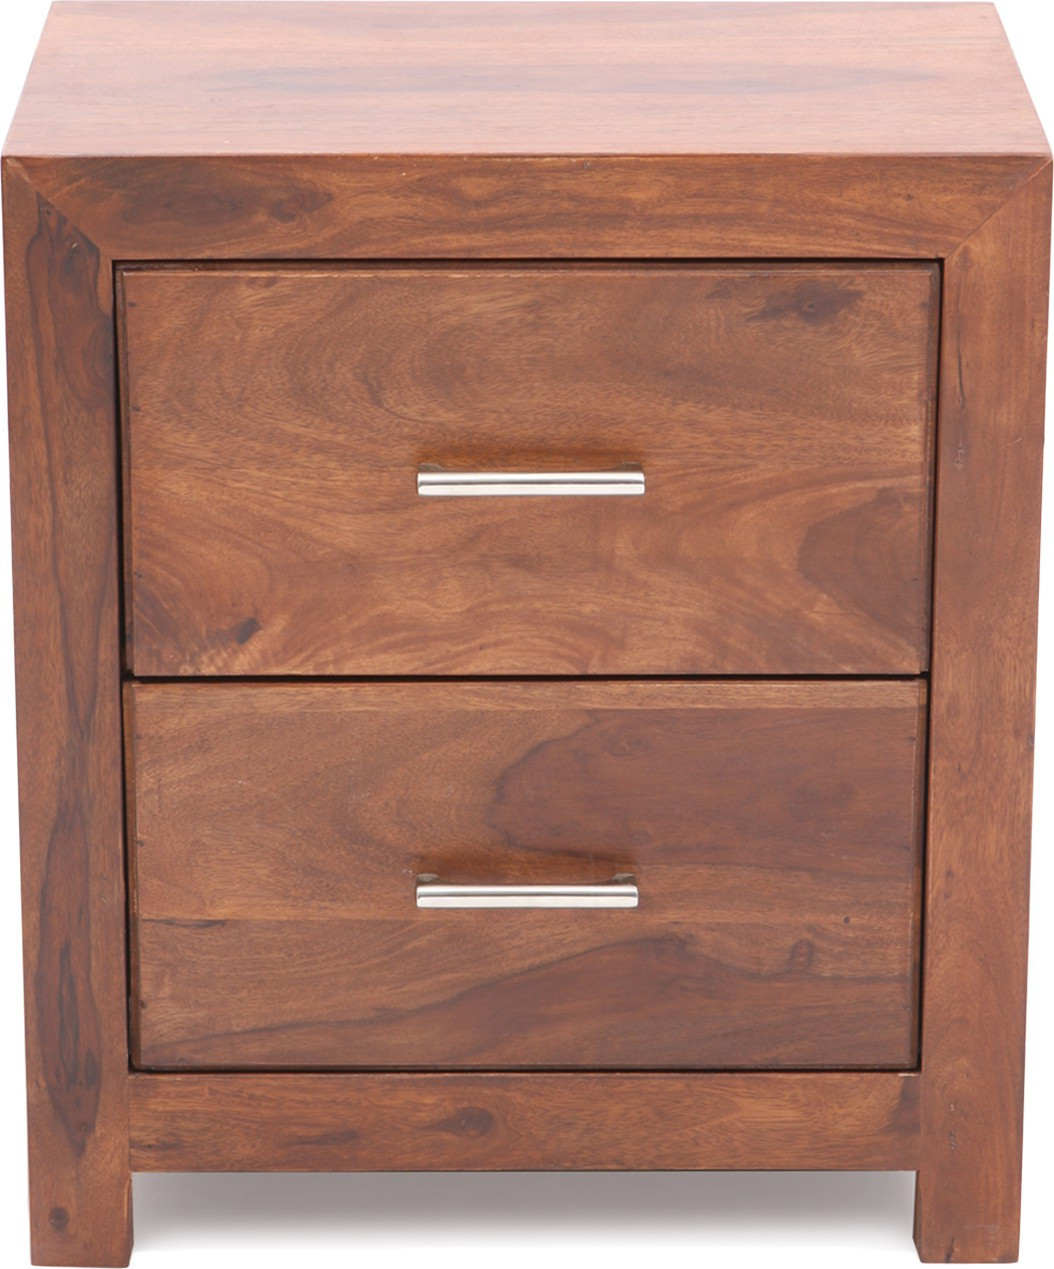 View Evok Osage Solid Wood Free Standing Chest of Drawers(Finish Color - Brown) Price Online(Evok)